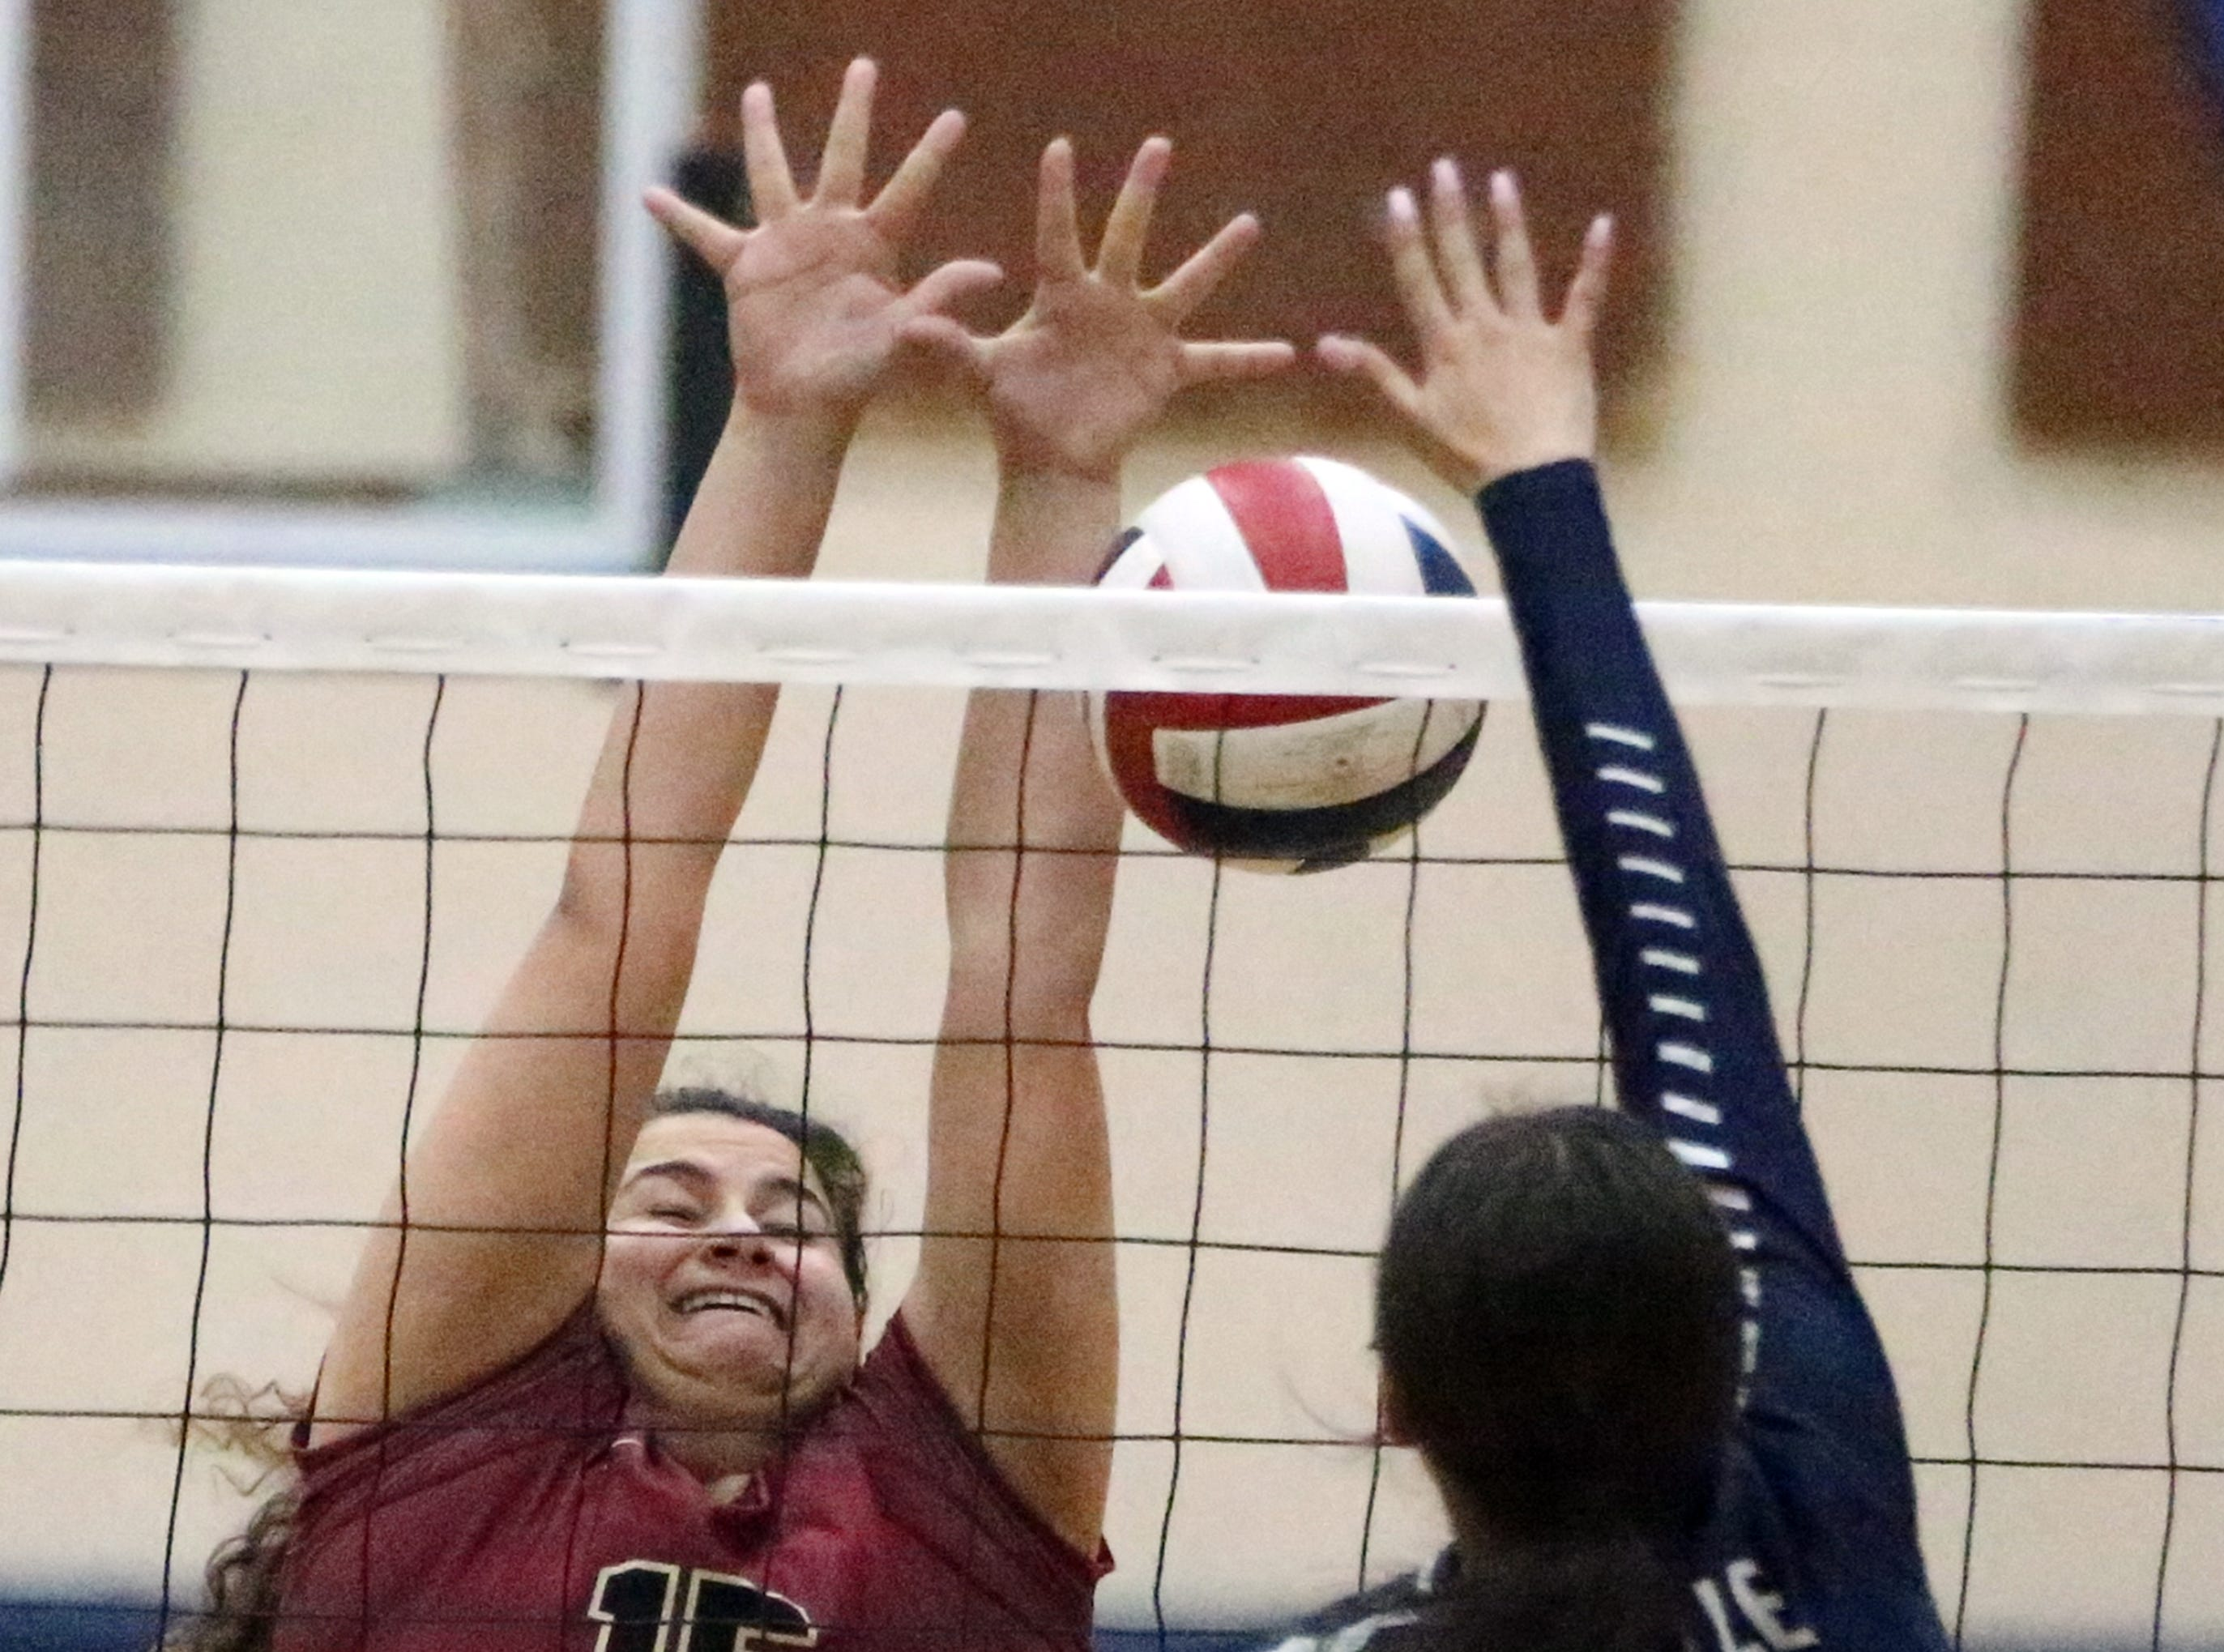 Marissa Tovar, 5, of Del Valle manages to get the ball over the net despite the efforts of El Dorado's Jacueline Paz, 15, Tuesday night.